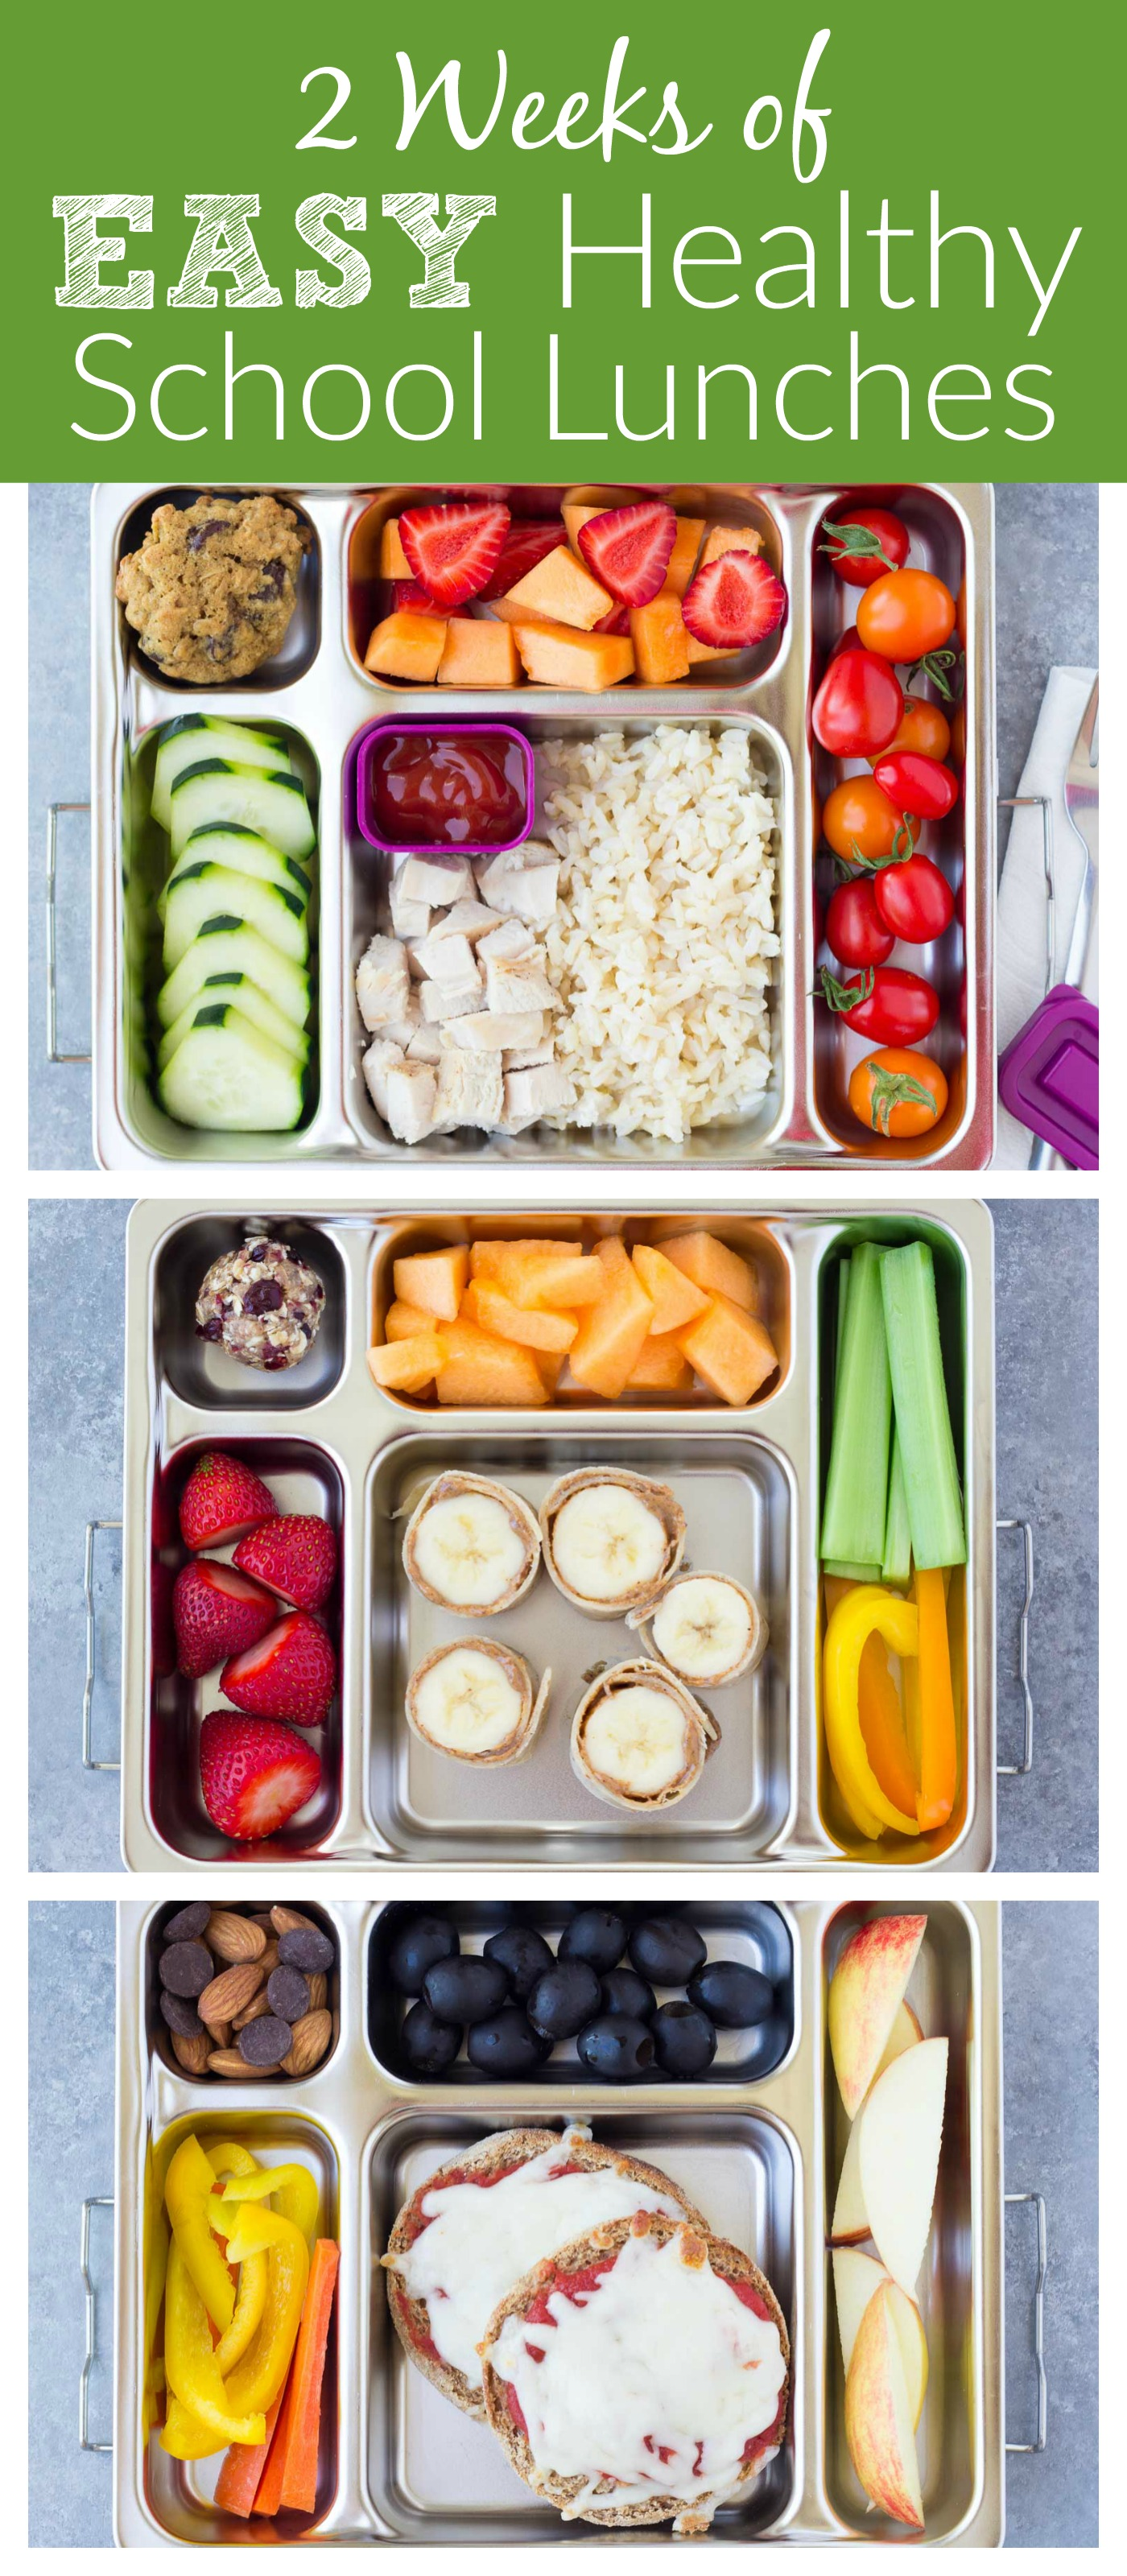 Two weeks of healthy school lunches for kids pinterest image of lunch boxes with text